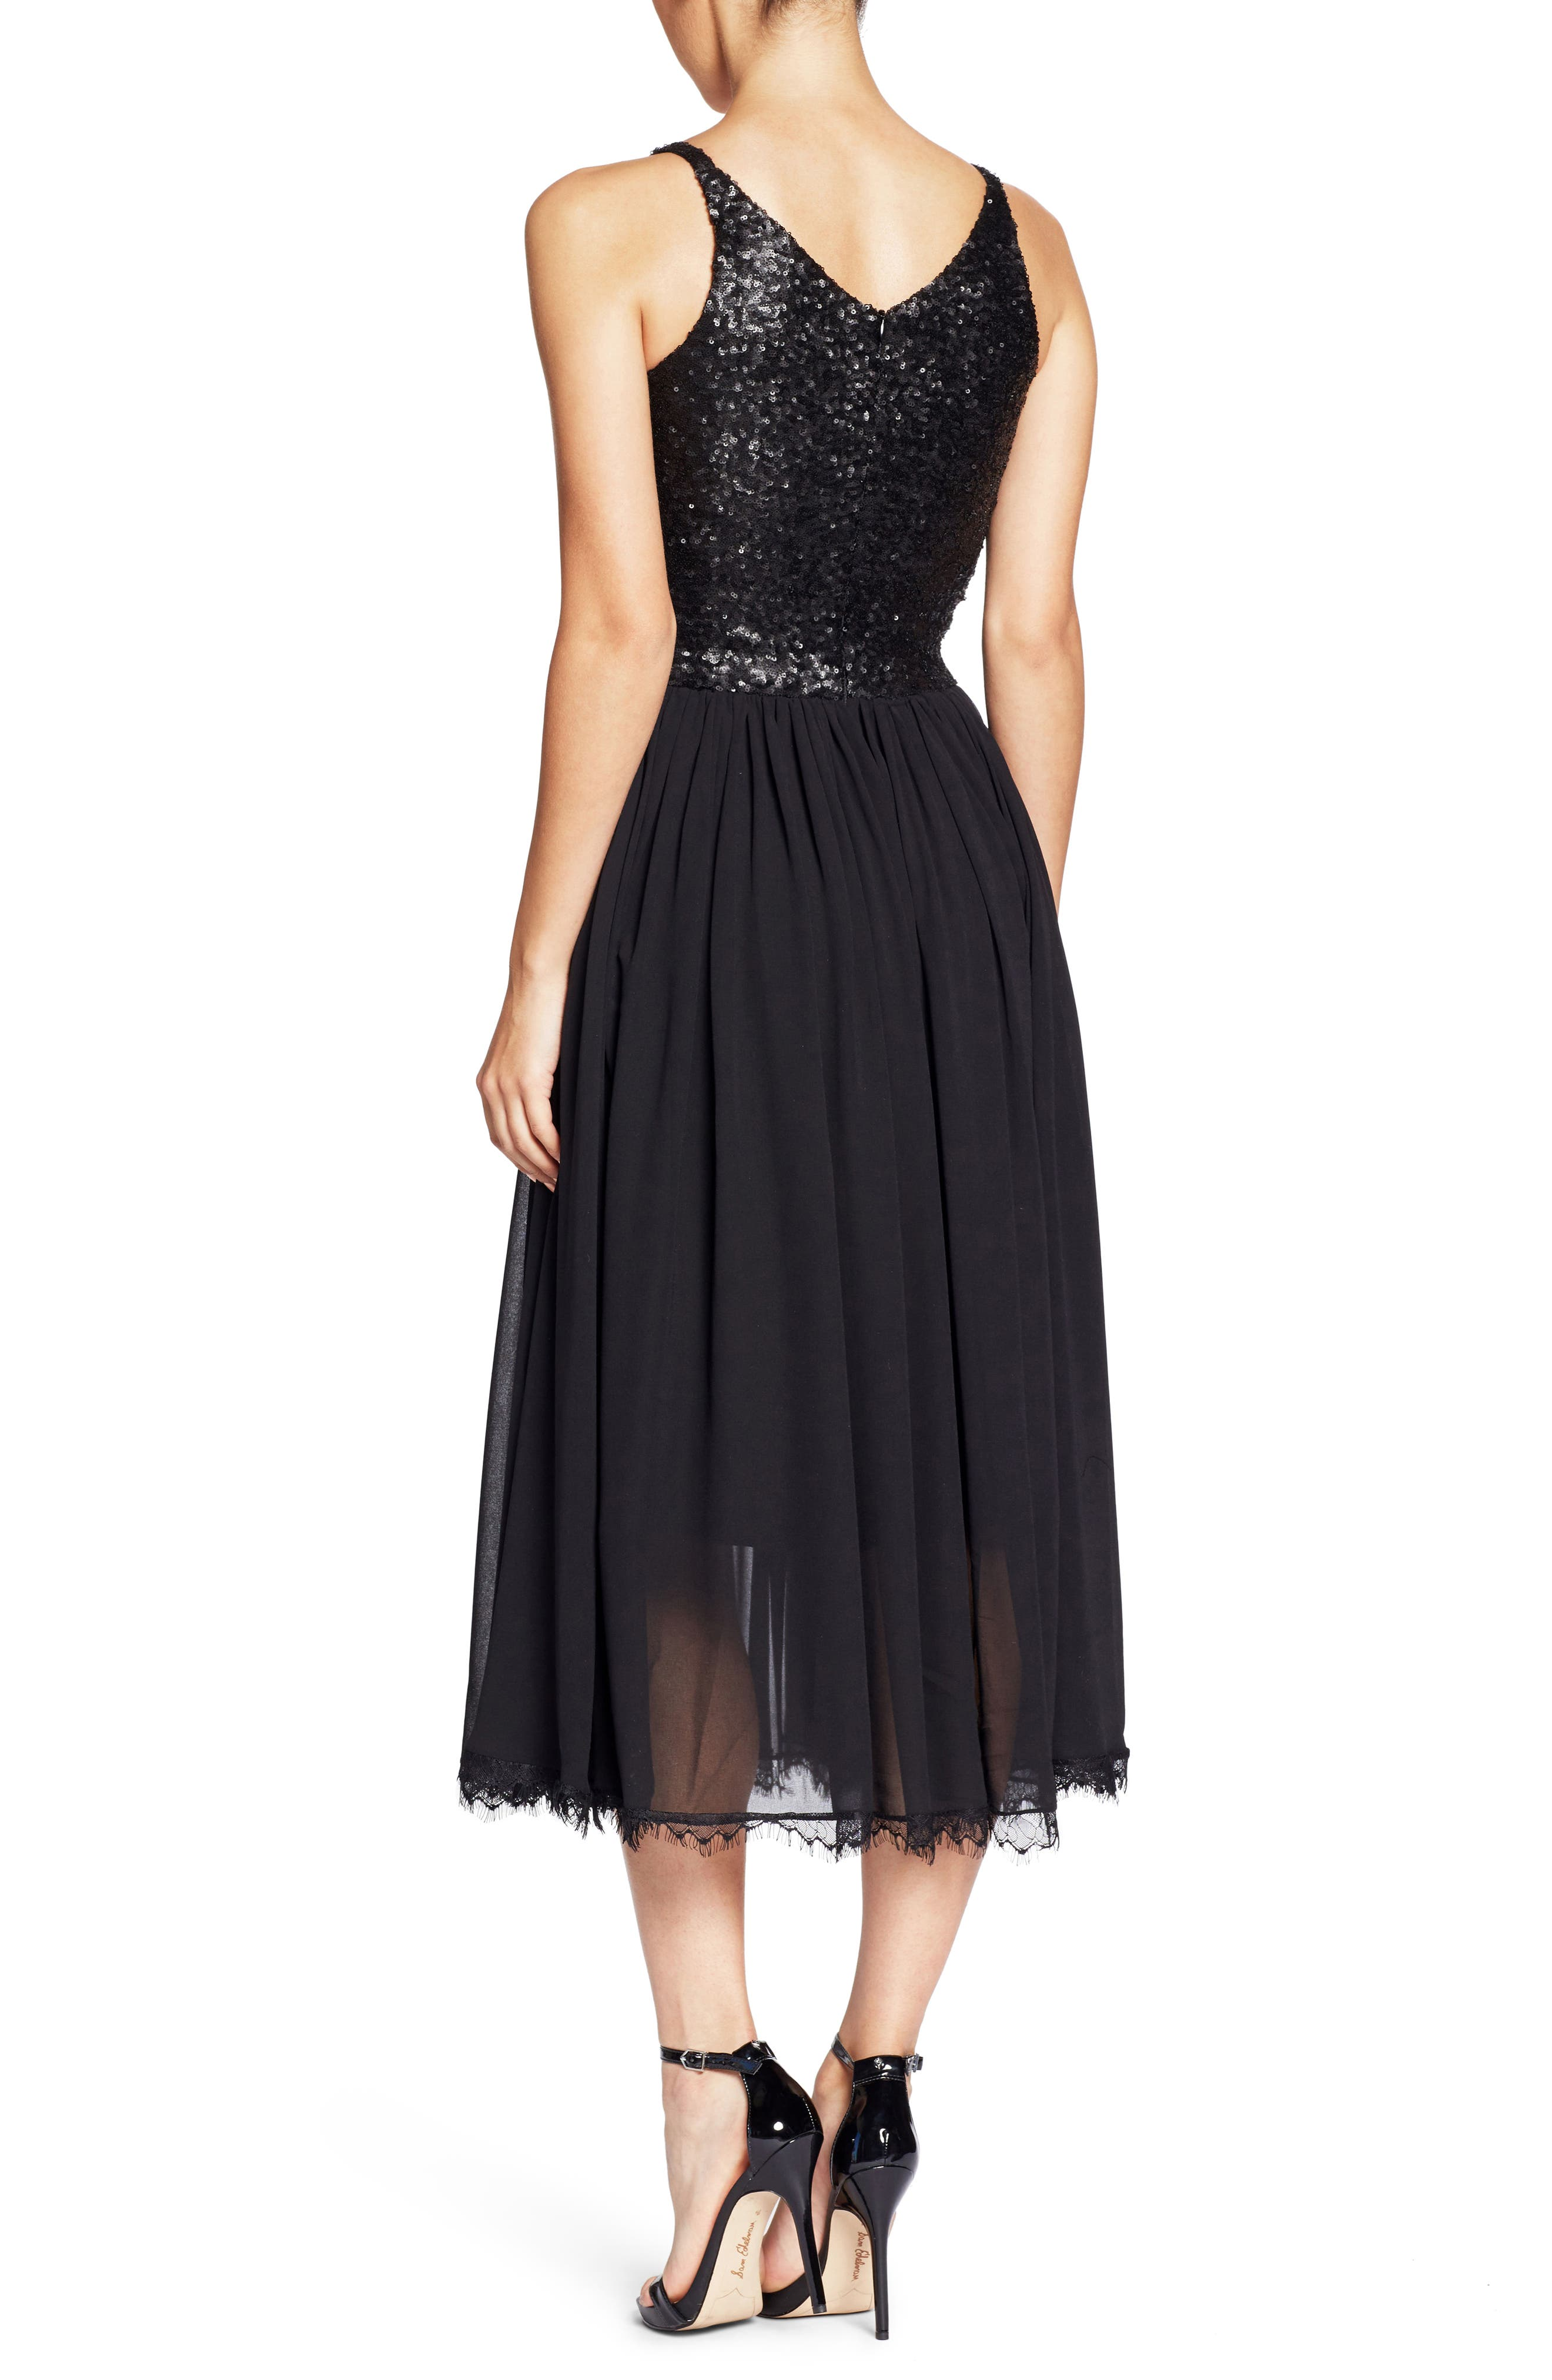 Tracy Plunging Sequin Bodice Tea Length Dress,                             Alternate thumbnail 2, color,                             008